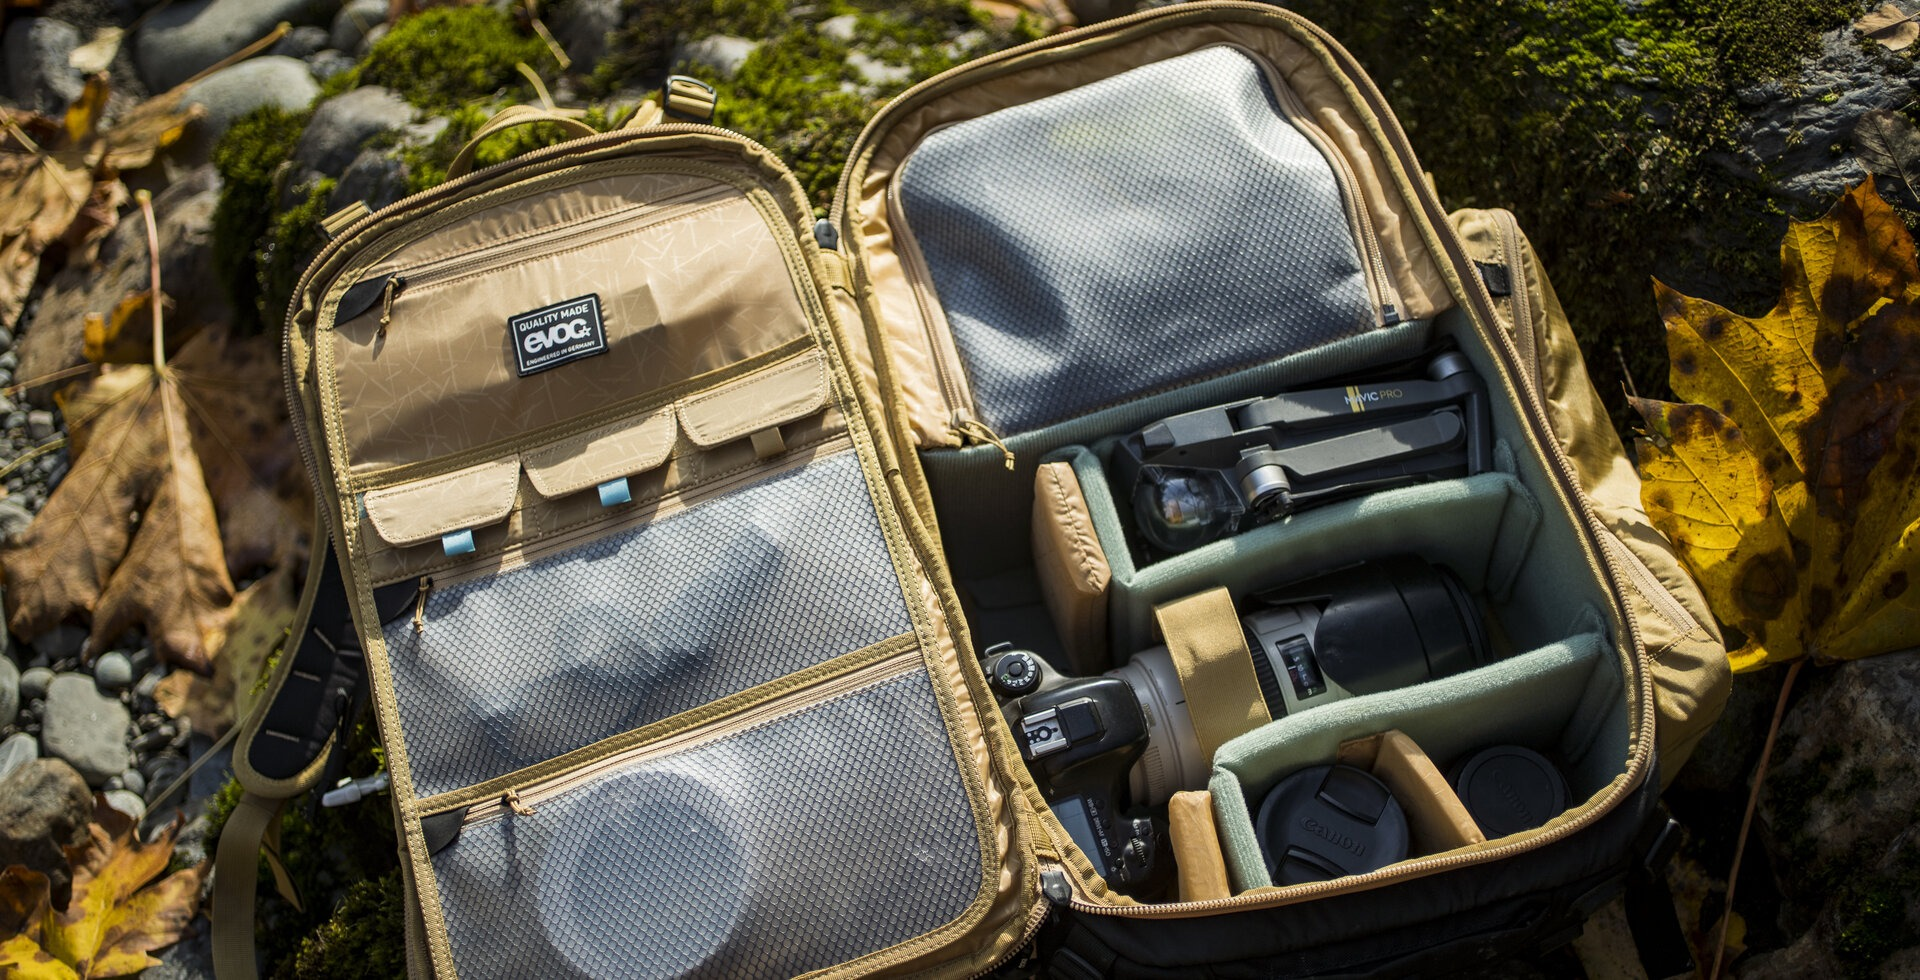 EVOC makes fully-fitted camera backpack for professional and amateur sports photographers.